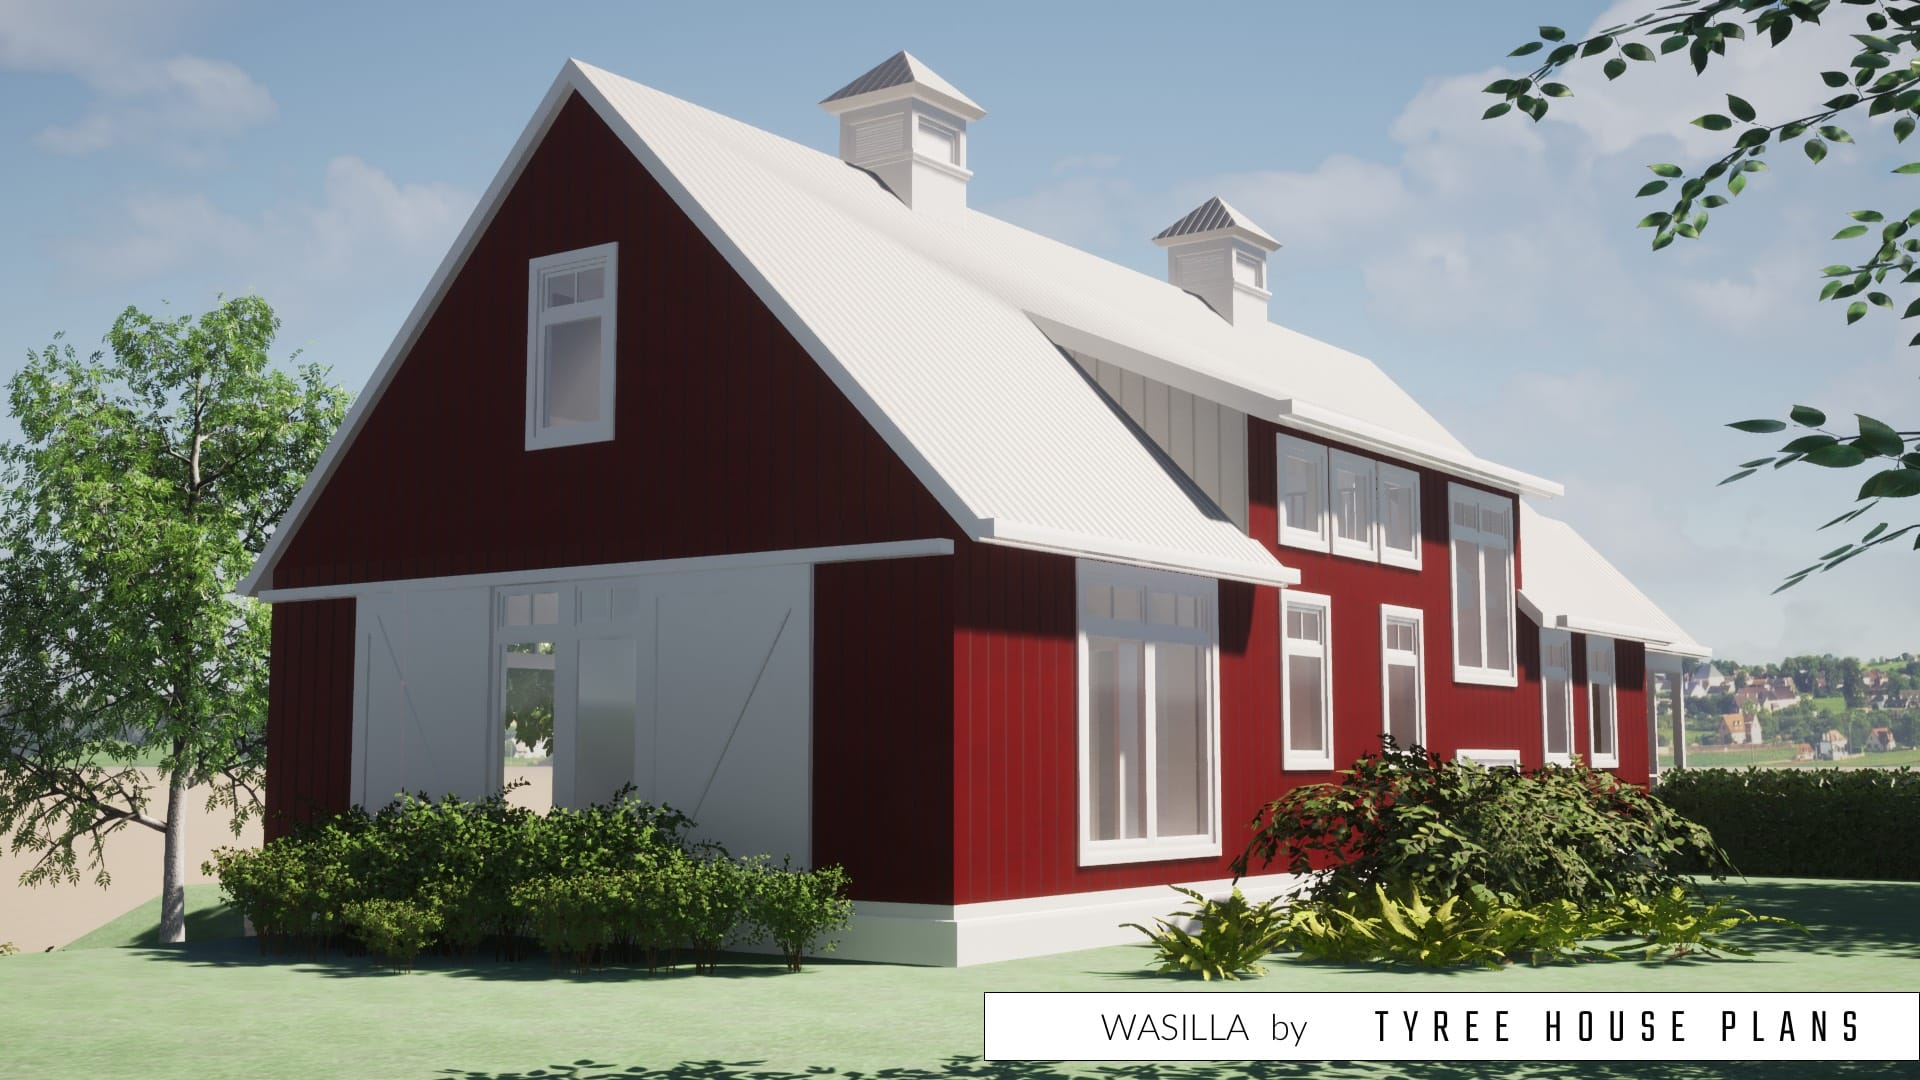 Wasilla House Plan by Tyree House Plans